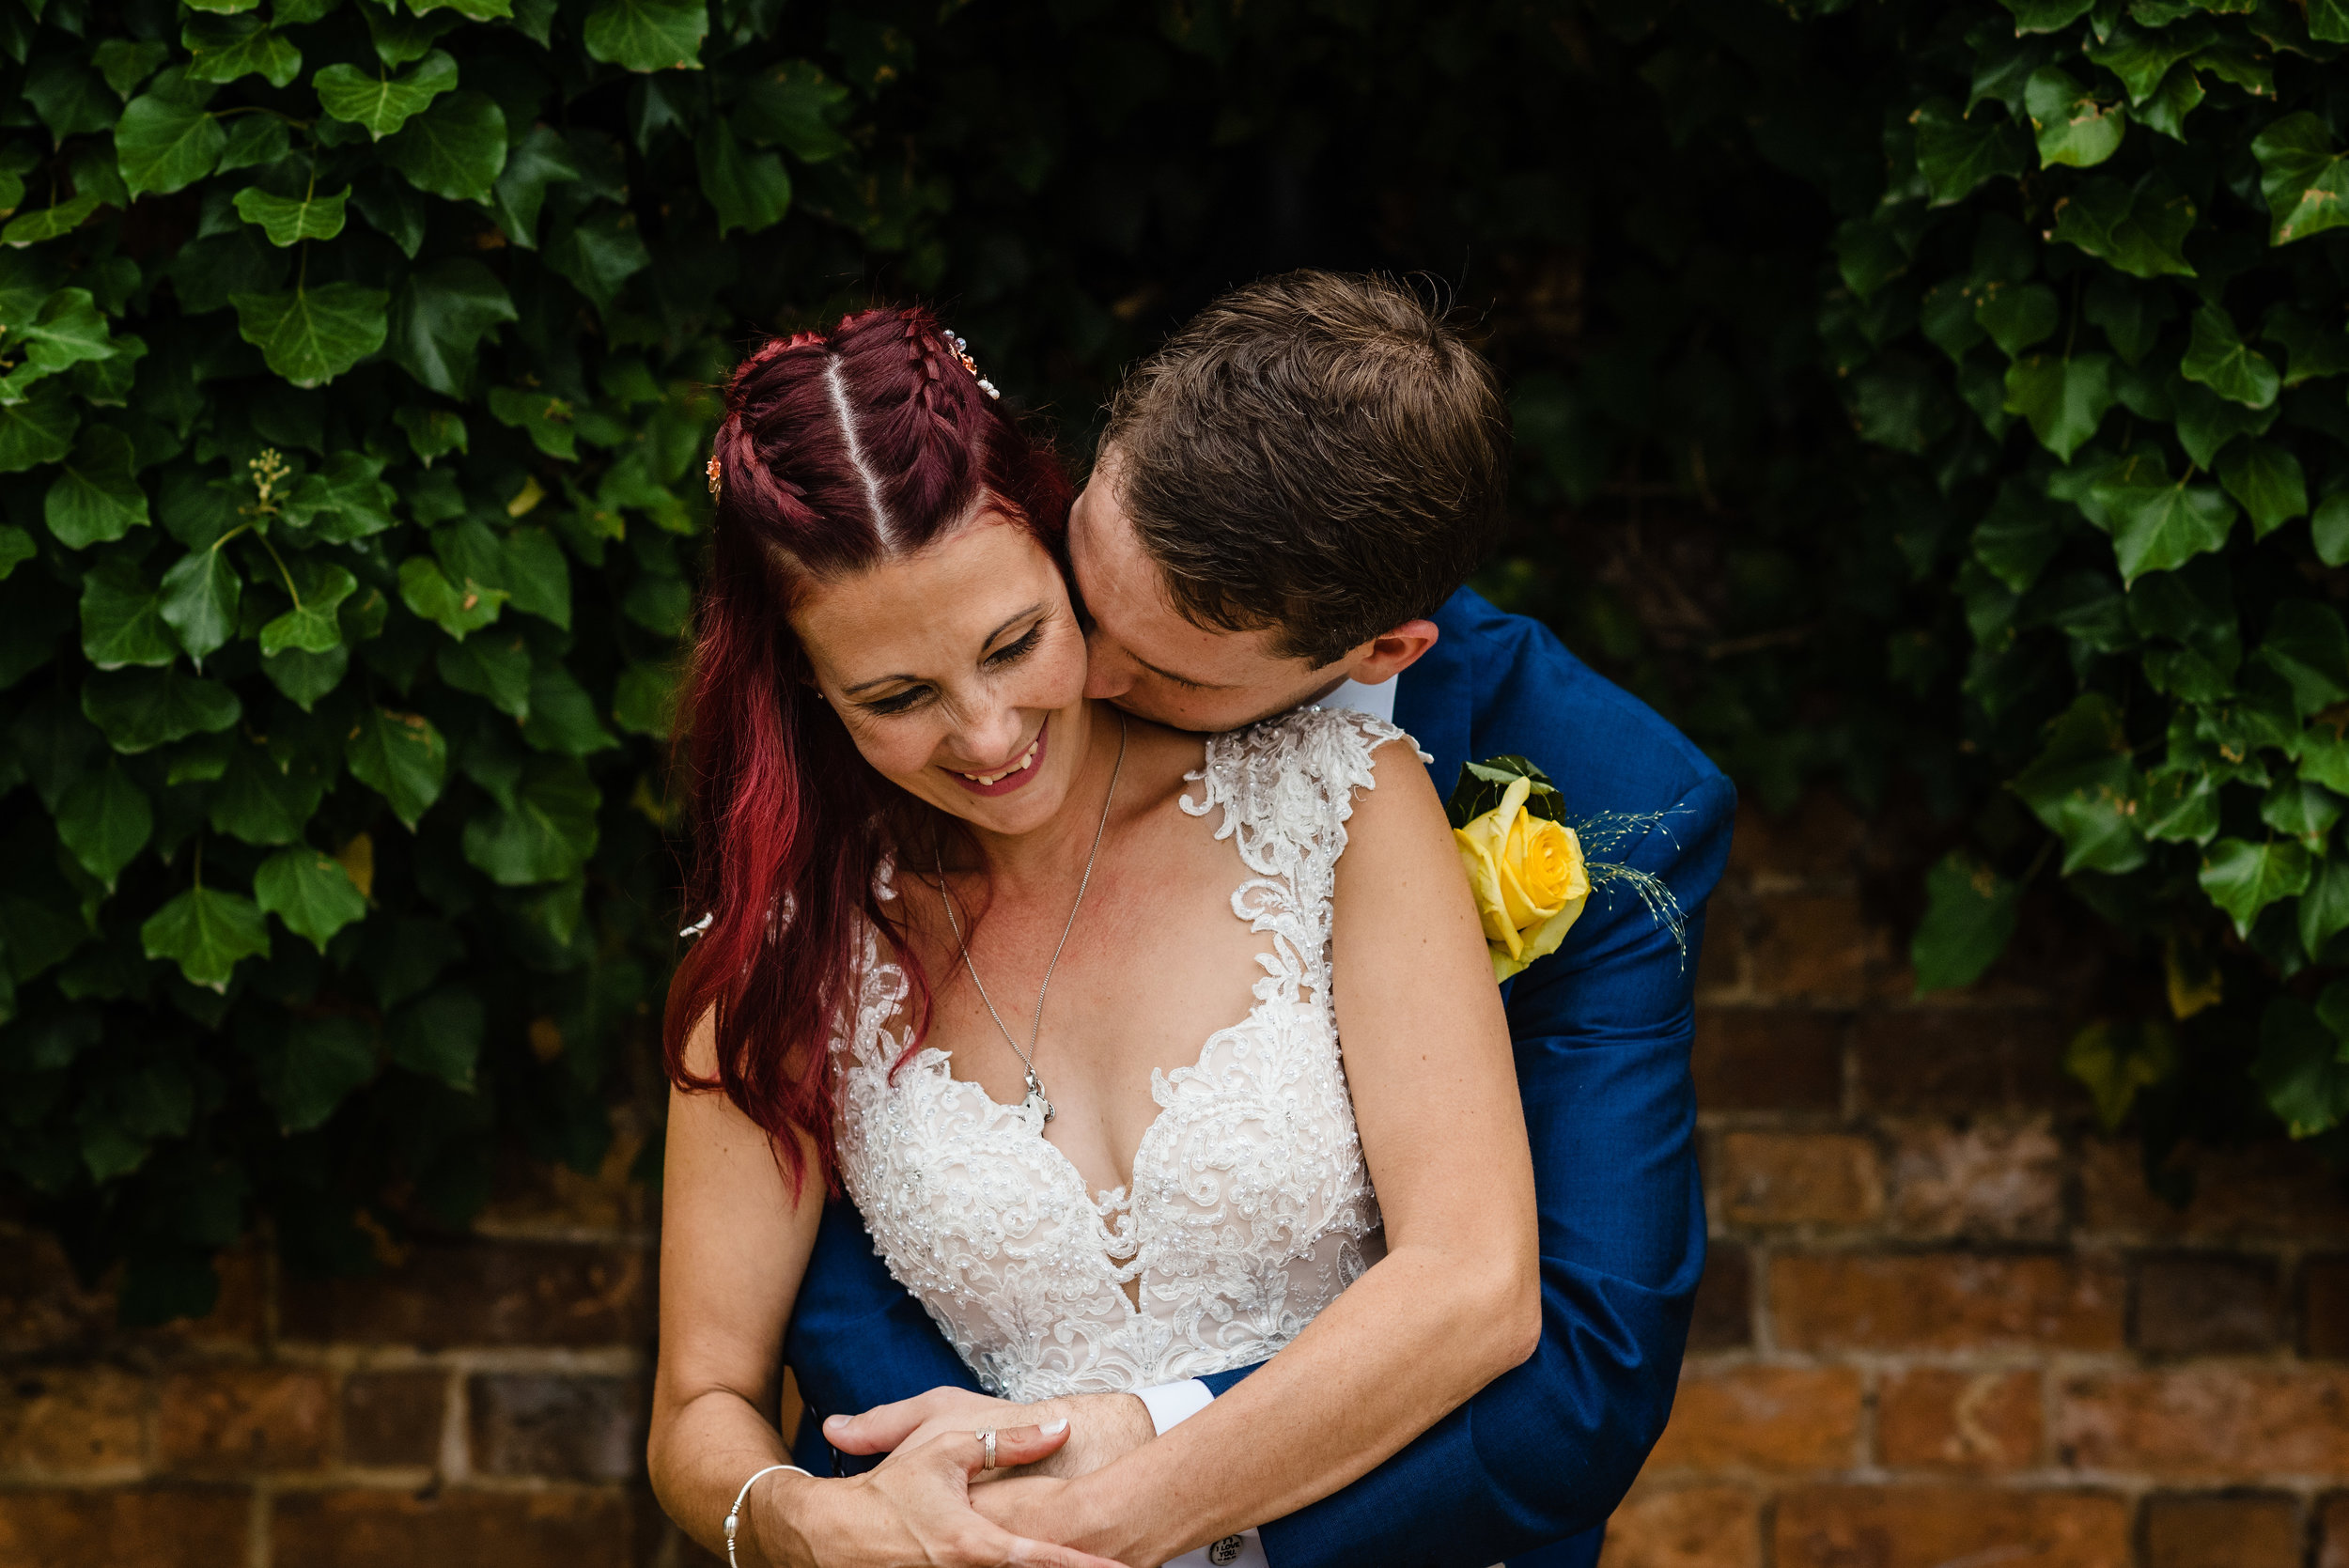 Sarah and Stephen - Thame, Oxfordshire